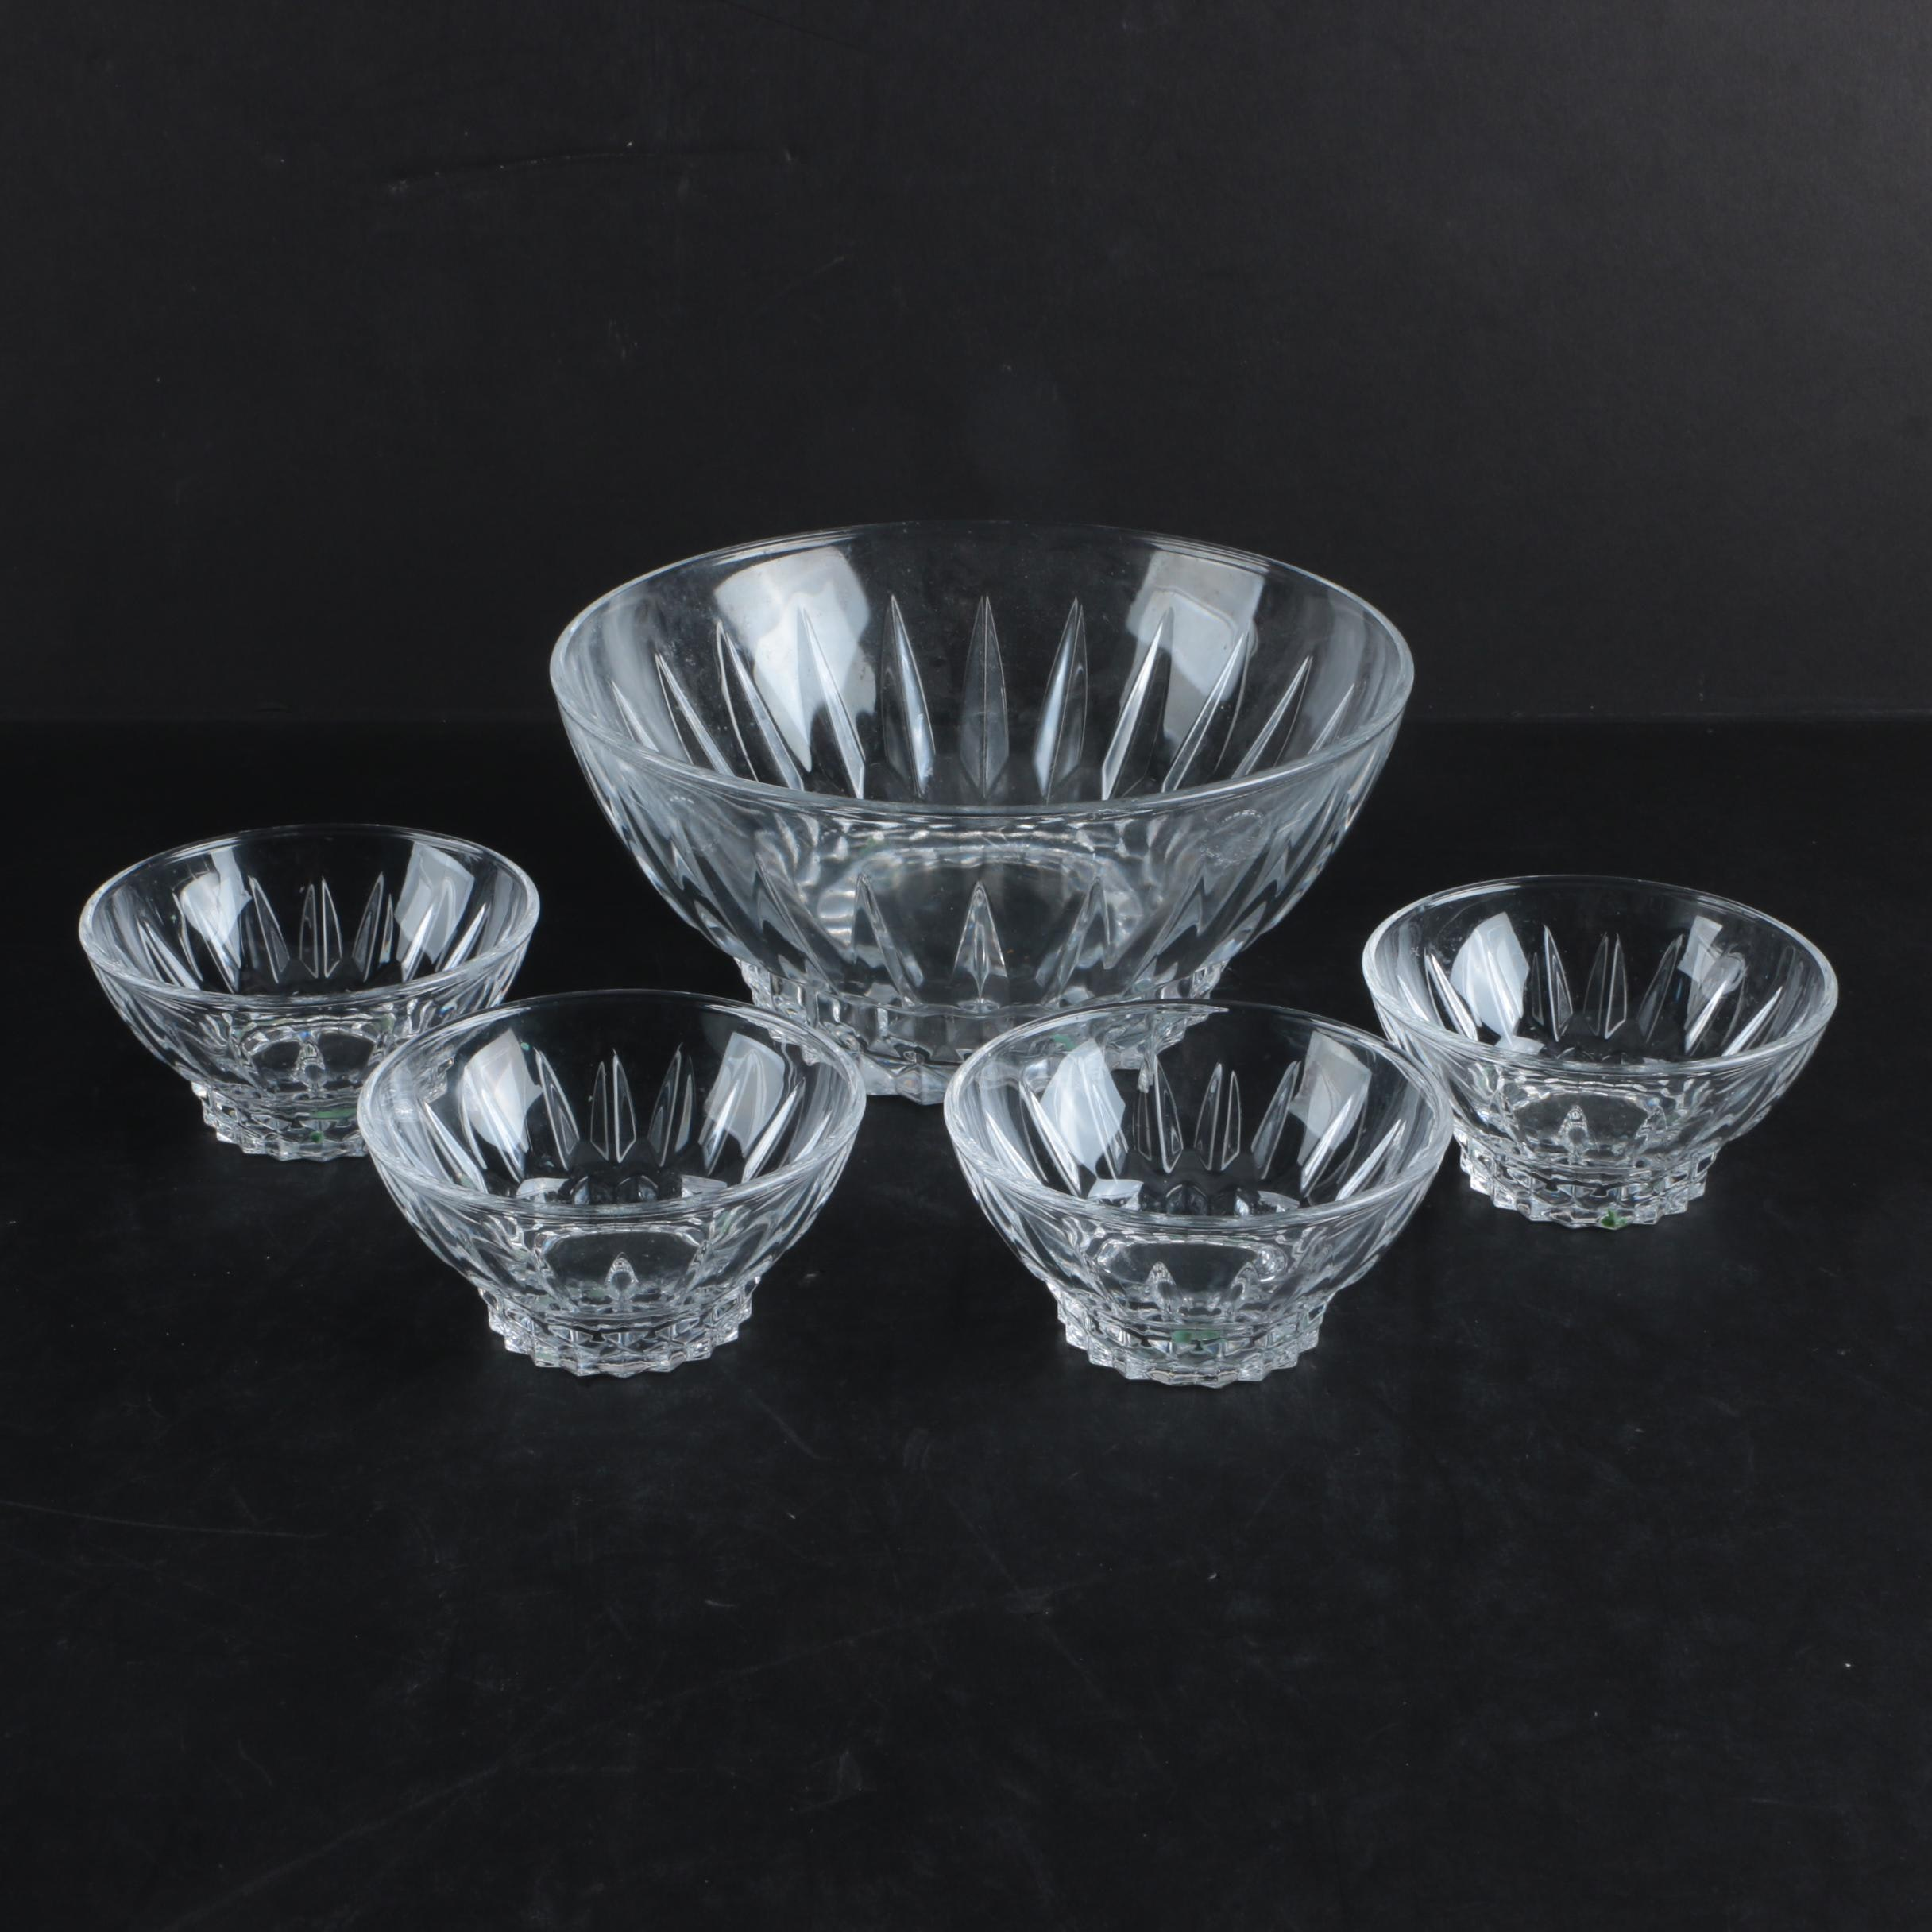 Glass Serving Bowl and Dessert Bowls